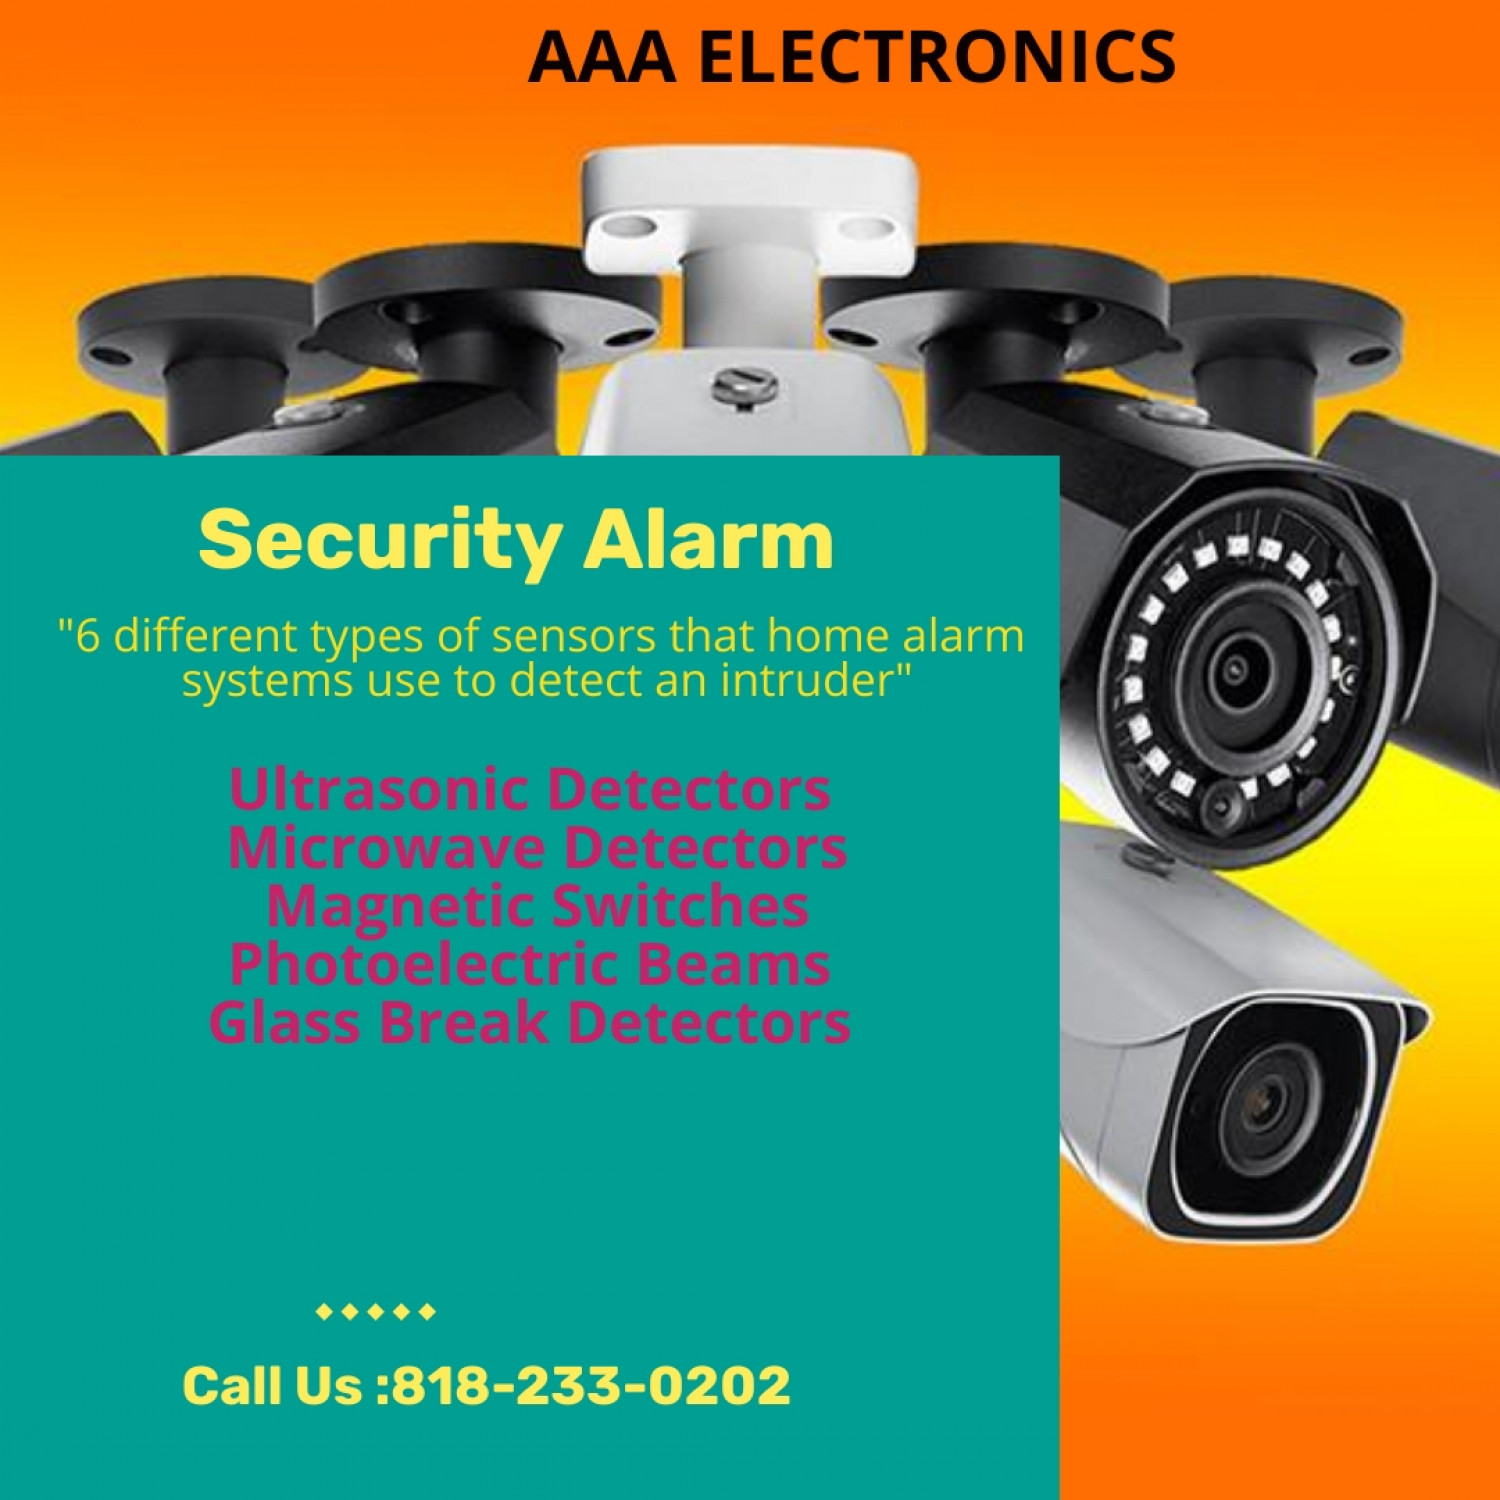 Security alarm - safety tips Infographic